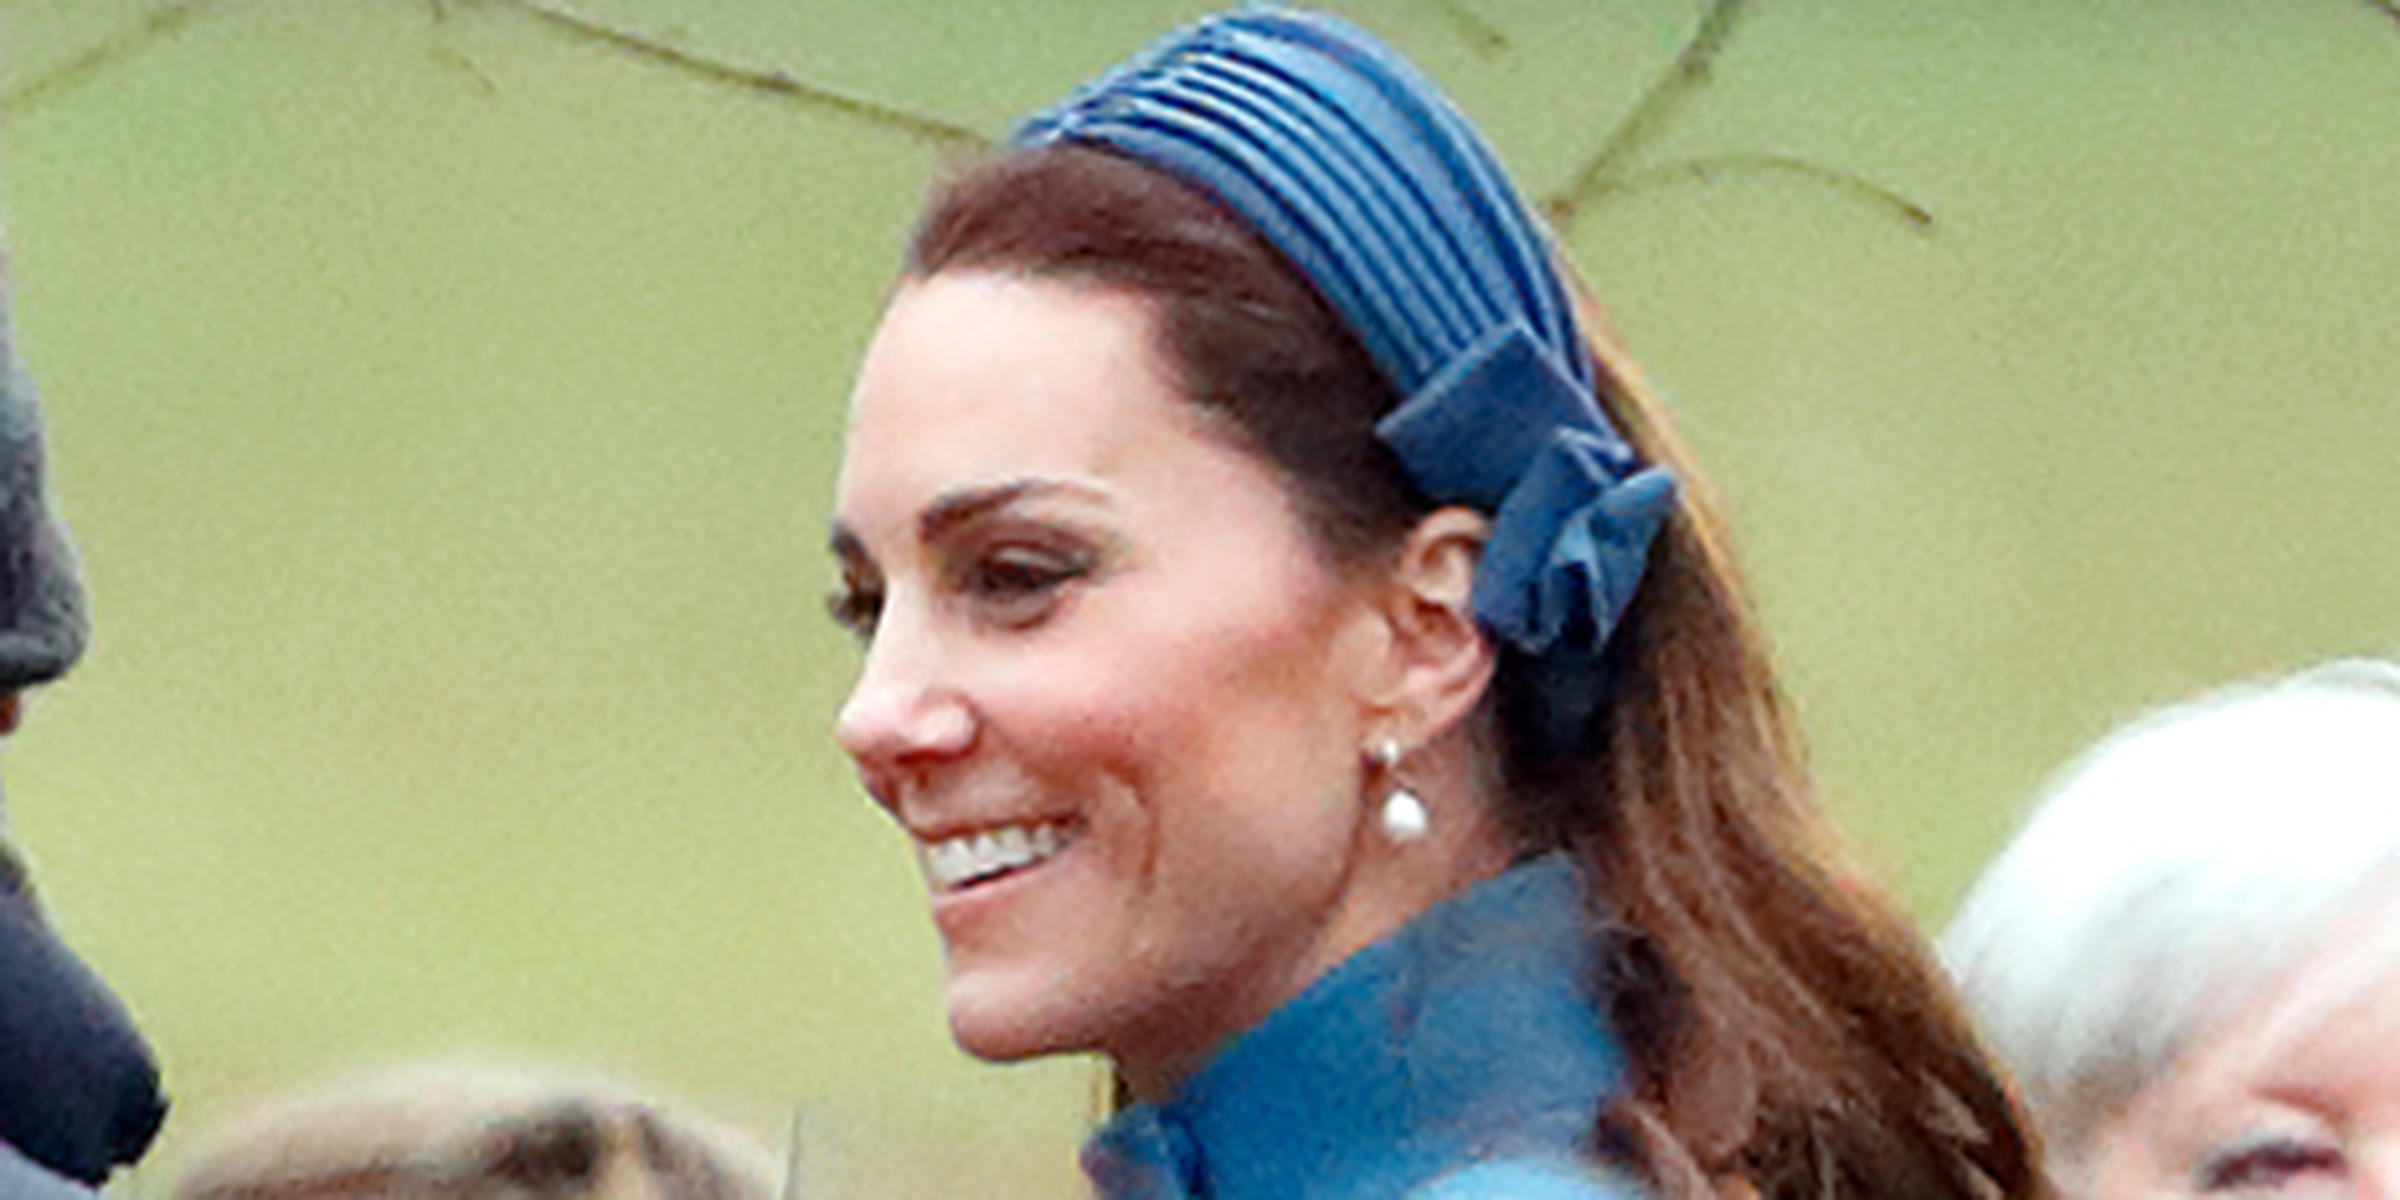 e362f9fbf31 The former Kate Middleton is bringing back the headband